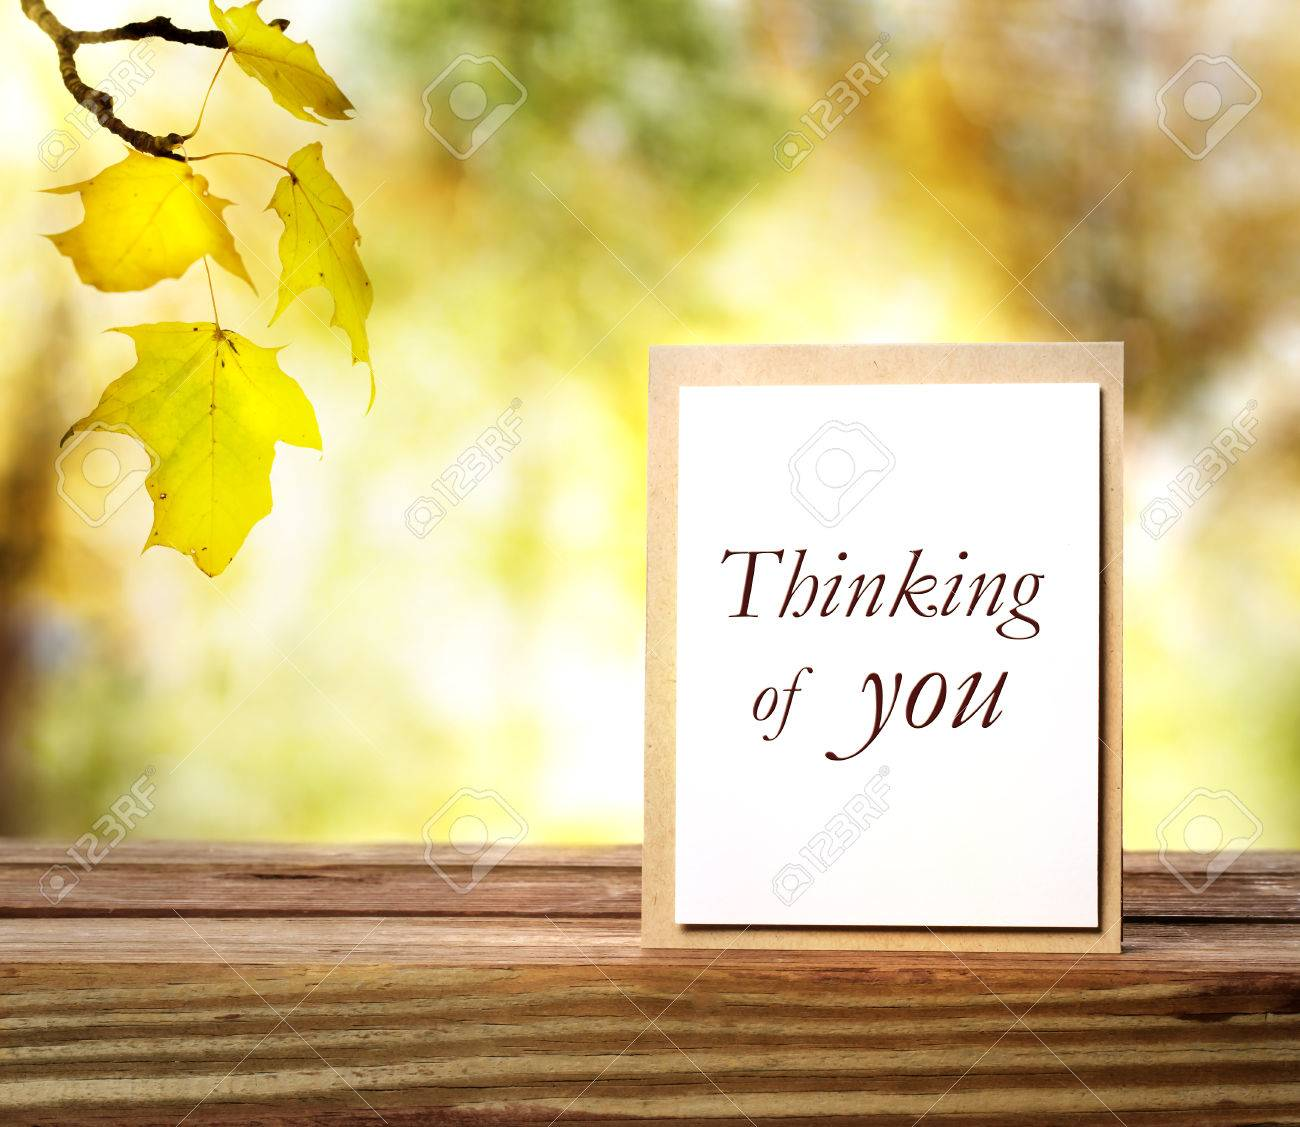 Thinking Of You Greeting Card On Autumn Leaves Background Stock